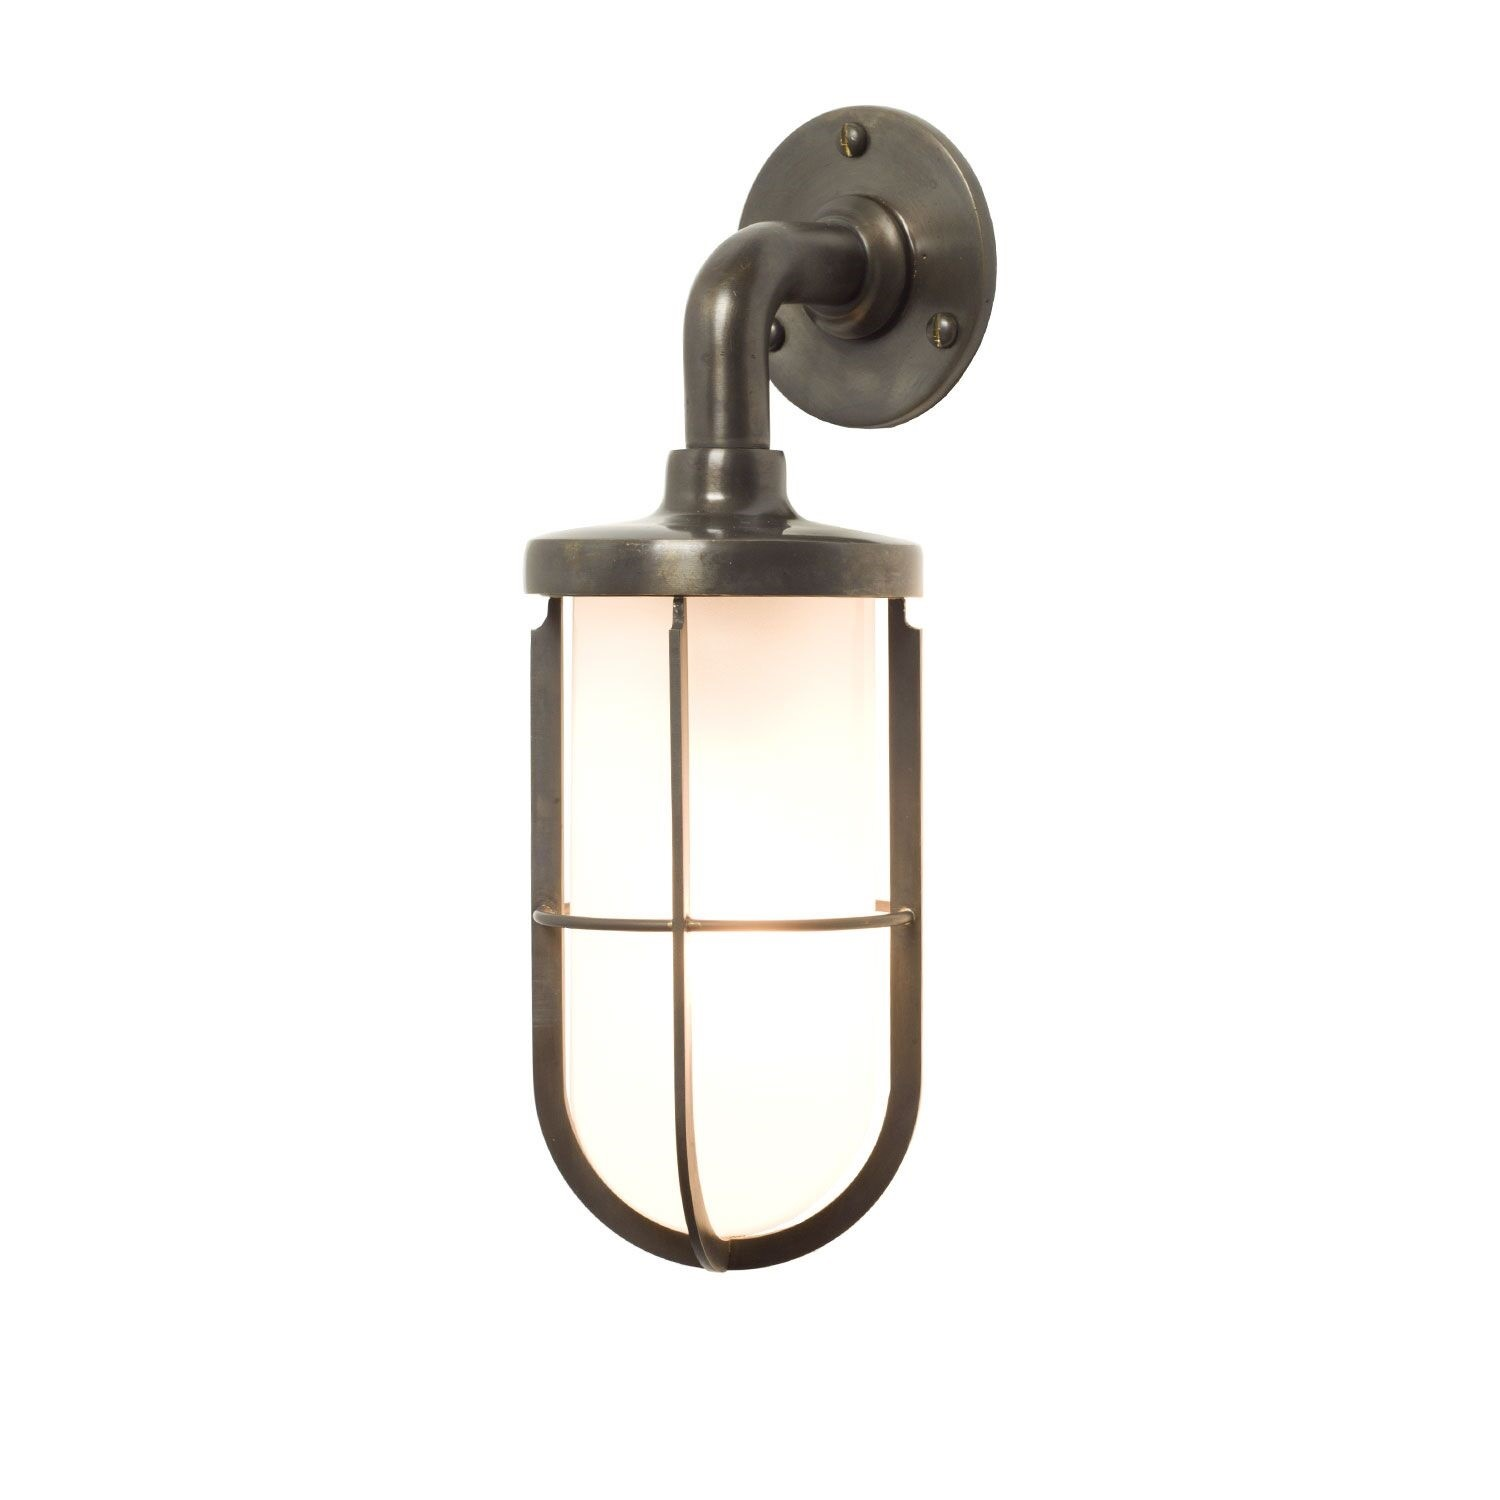 Miniature Ship's Well Glass Light 7207 Weathered Brass, Frosted glass